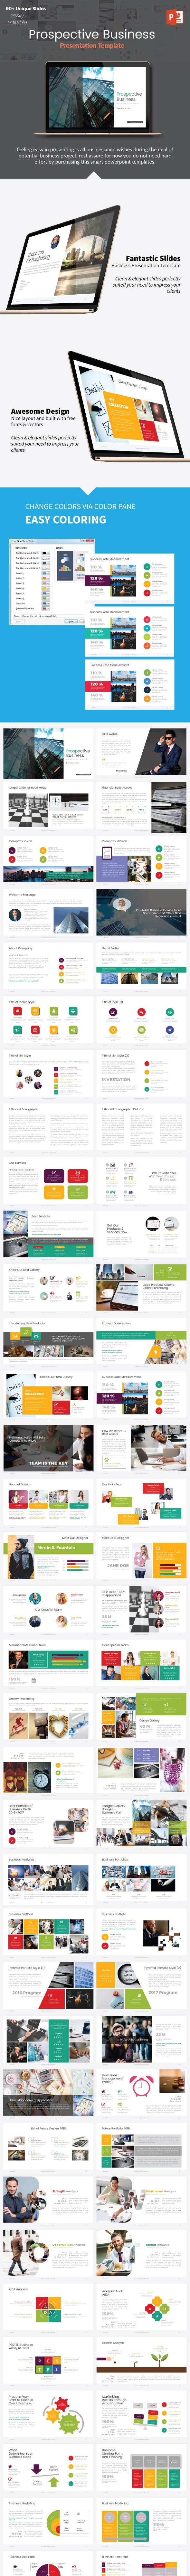 Prospective Business Presentation - Business PowerPoint Templates